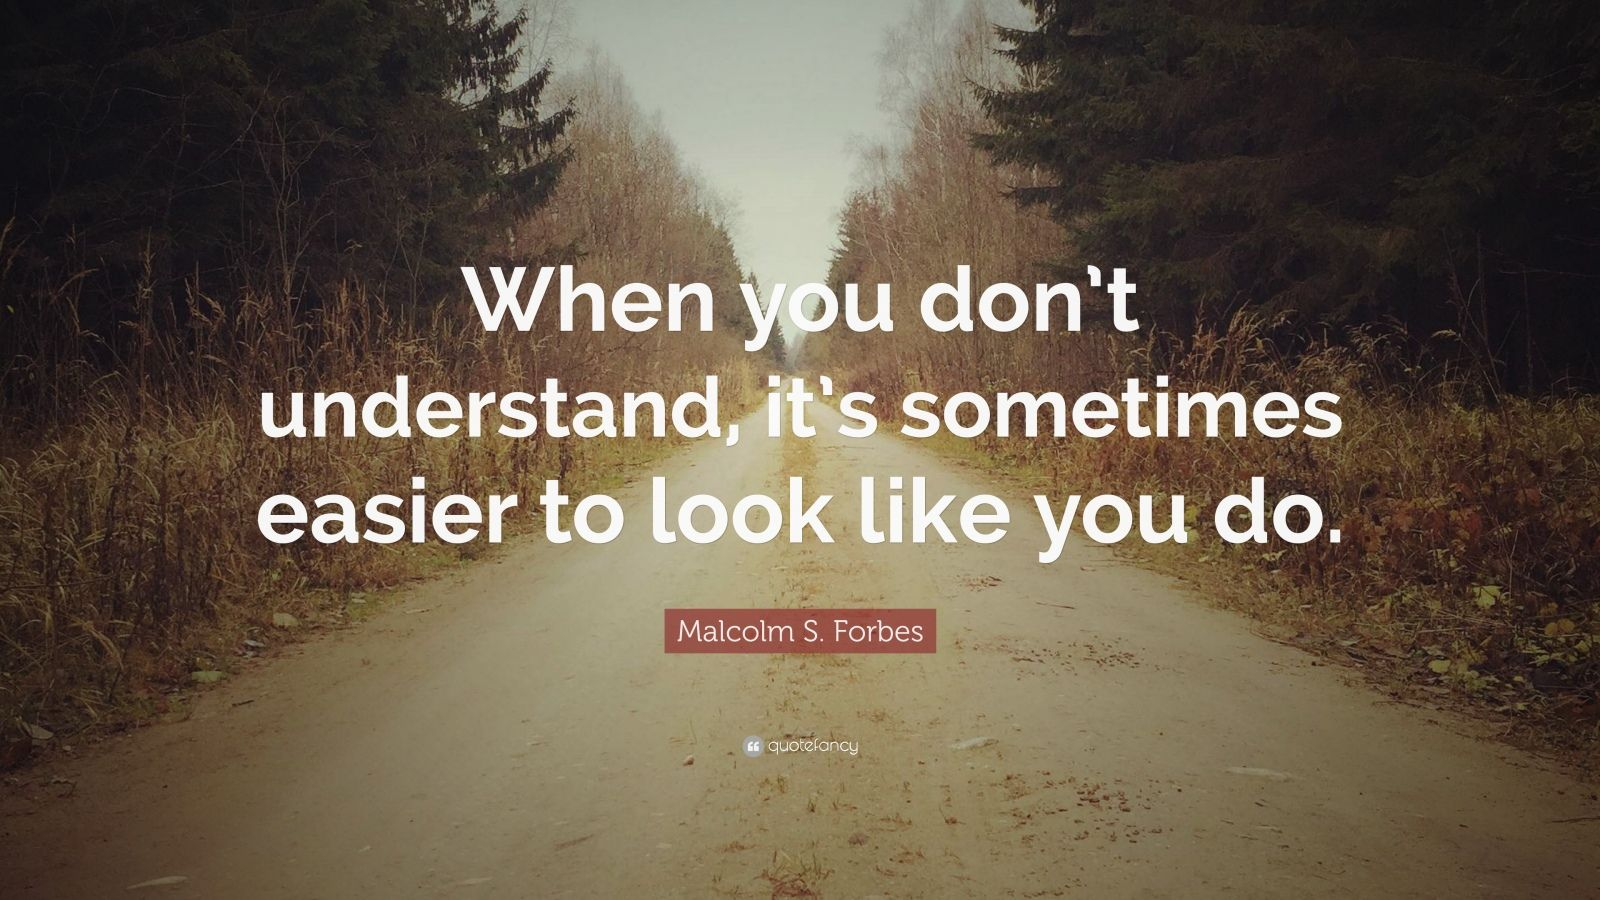 """Malcolm S. Forbes Quote: """"When you don't understand, it's sometimes easier to look like you do."""""""